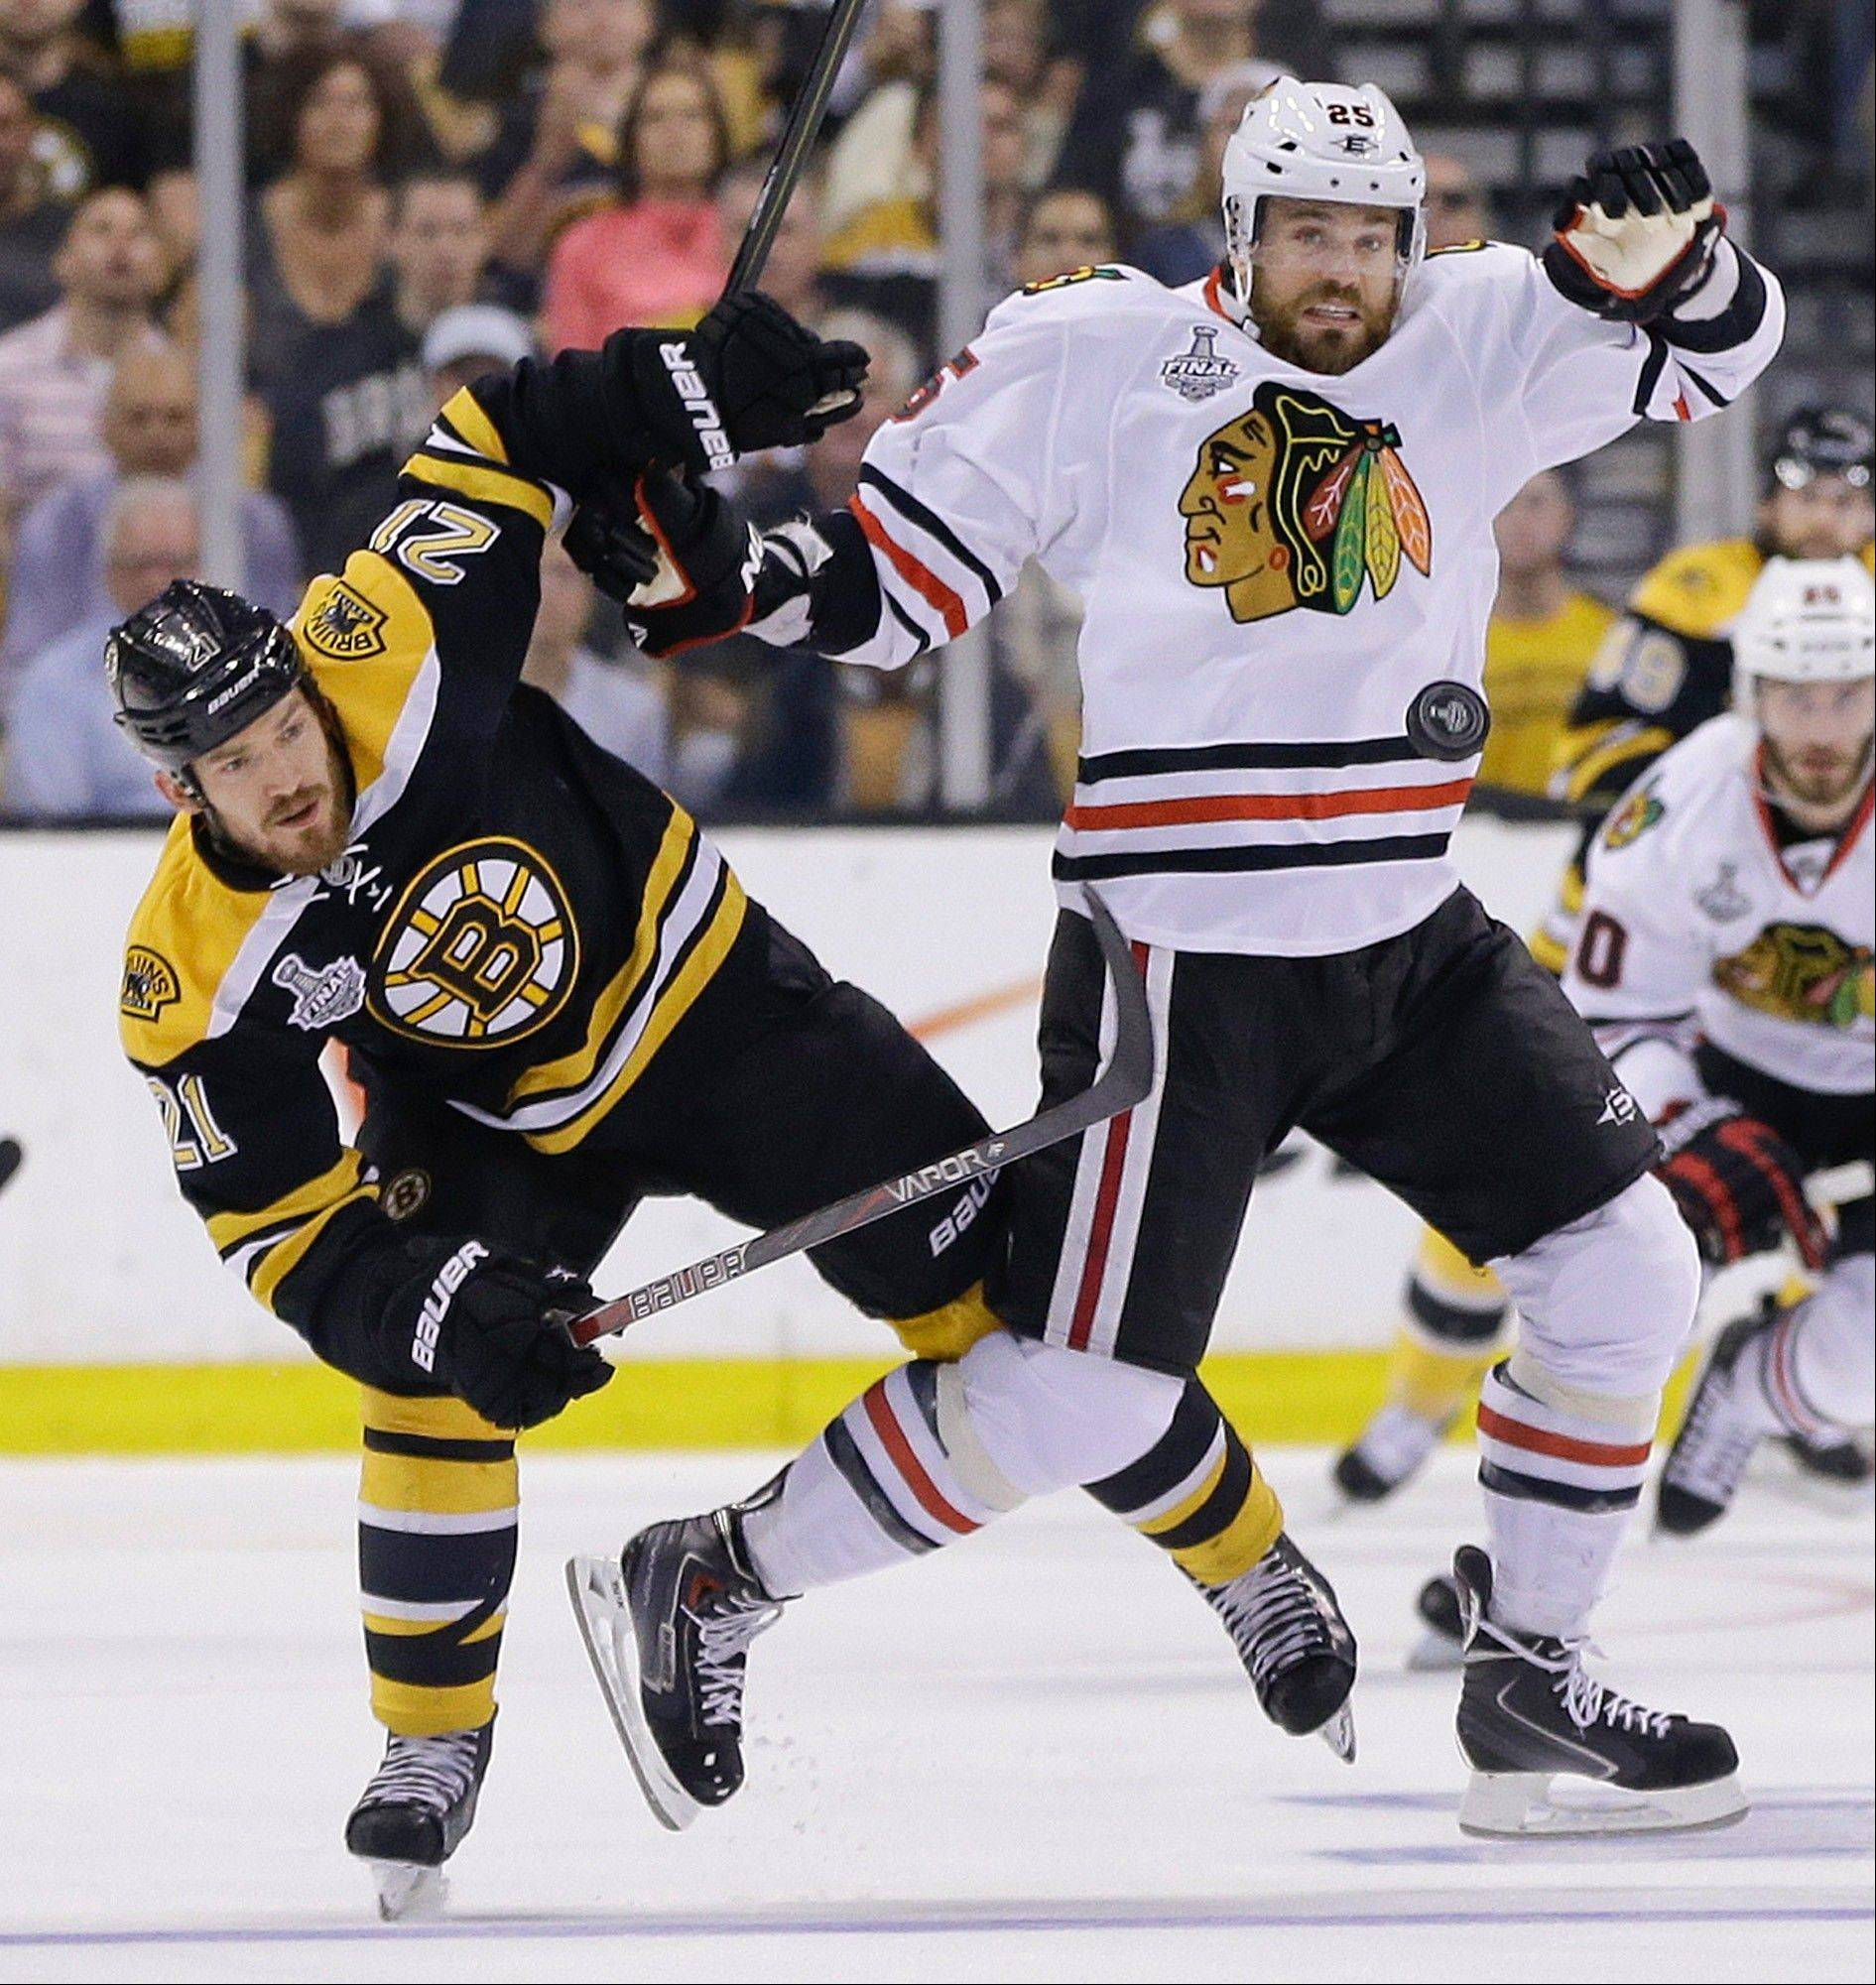 Bruins defenseman Andrew Ference (21) and Blackhawks center Patrick Sharp (10) fight for position as the puck passes during Monday night�s Game 6.